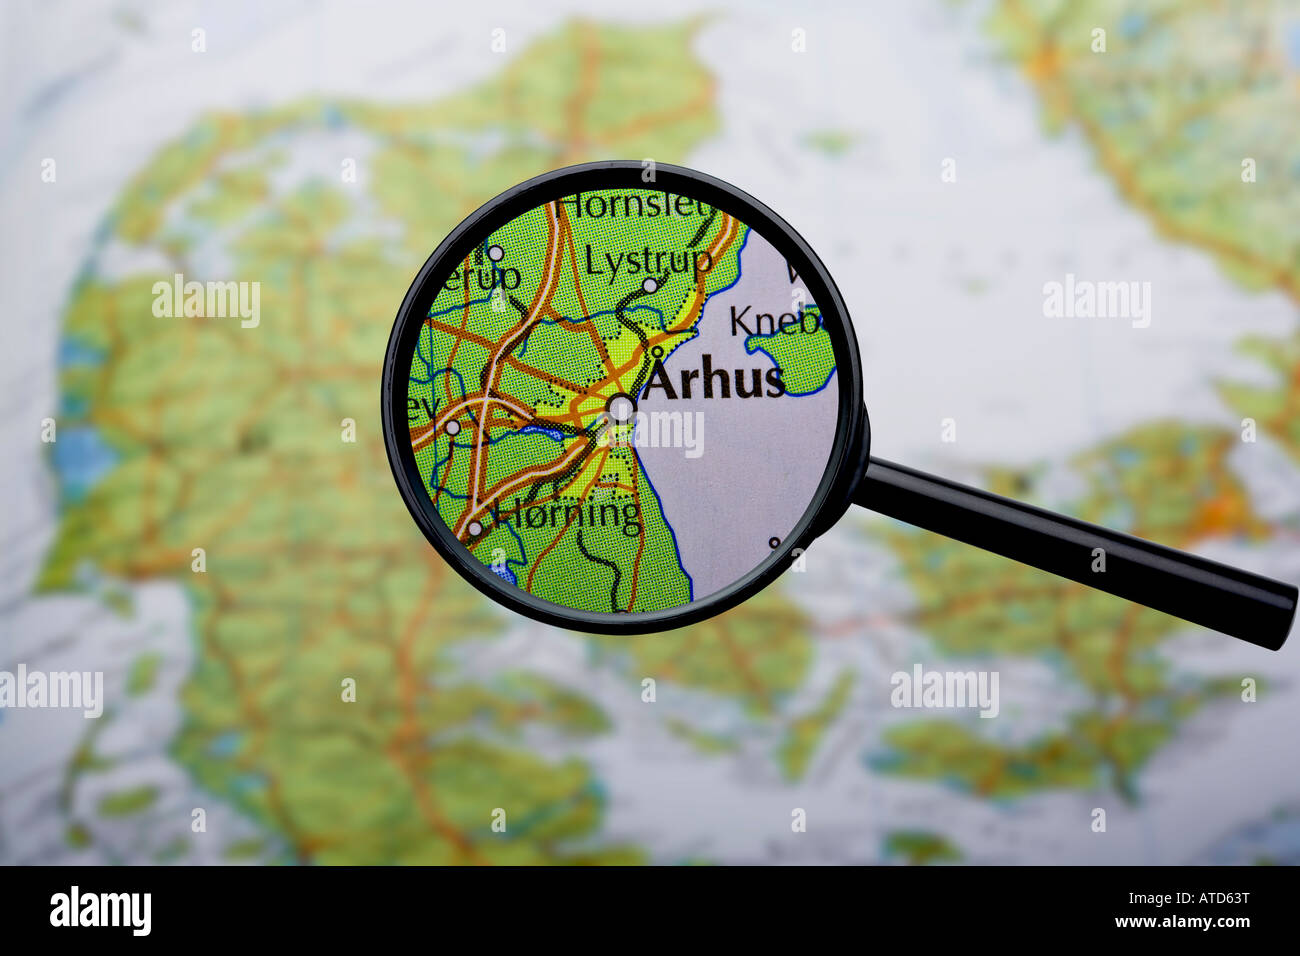 Map of Denmark with Aarhus enlarged - Stock Image